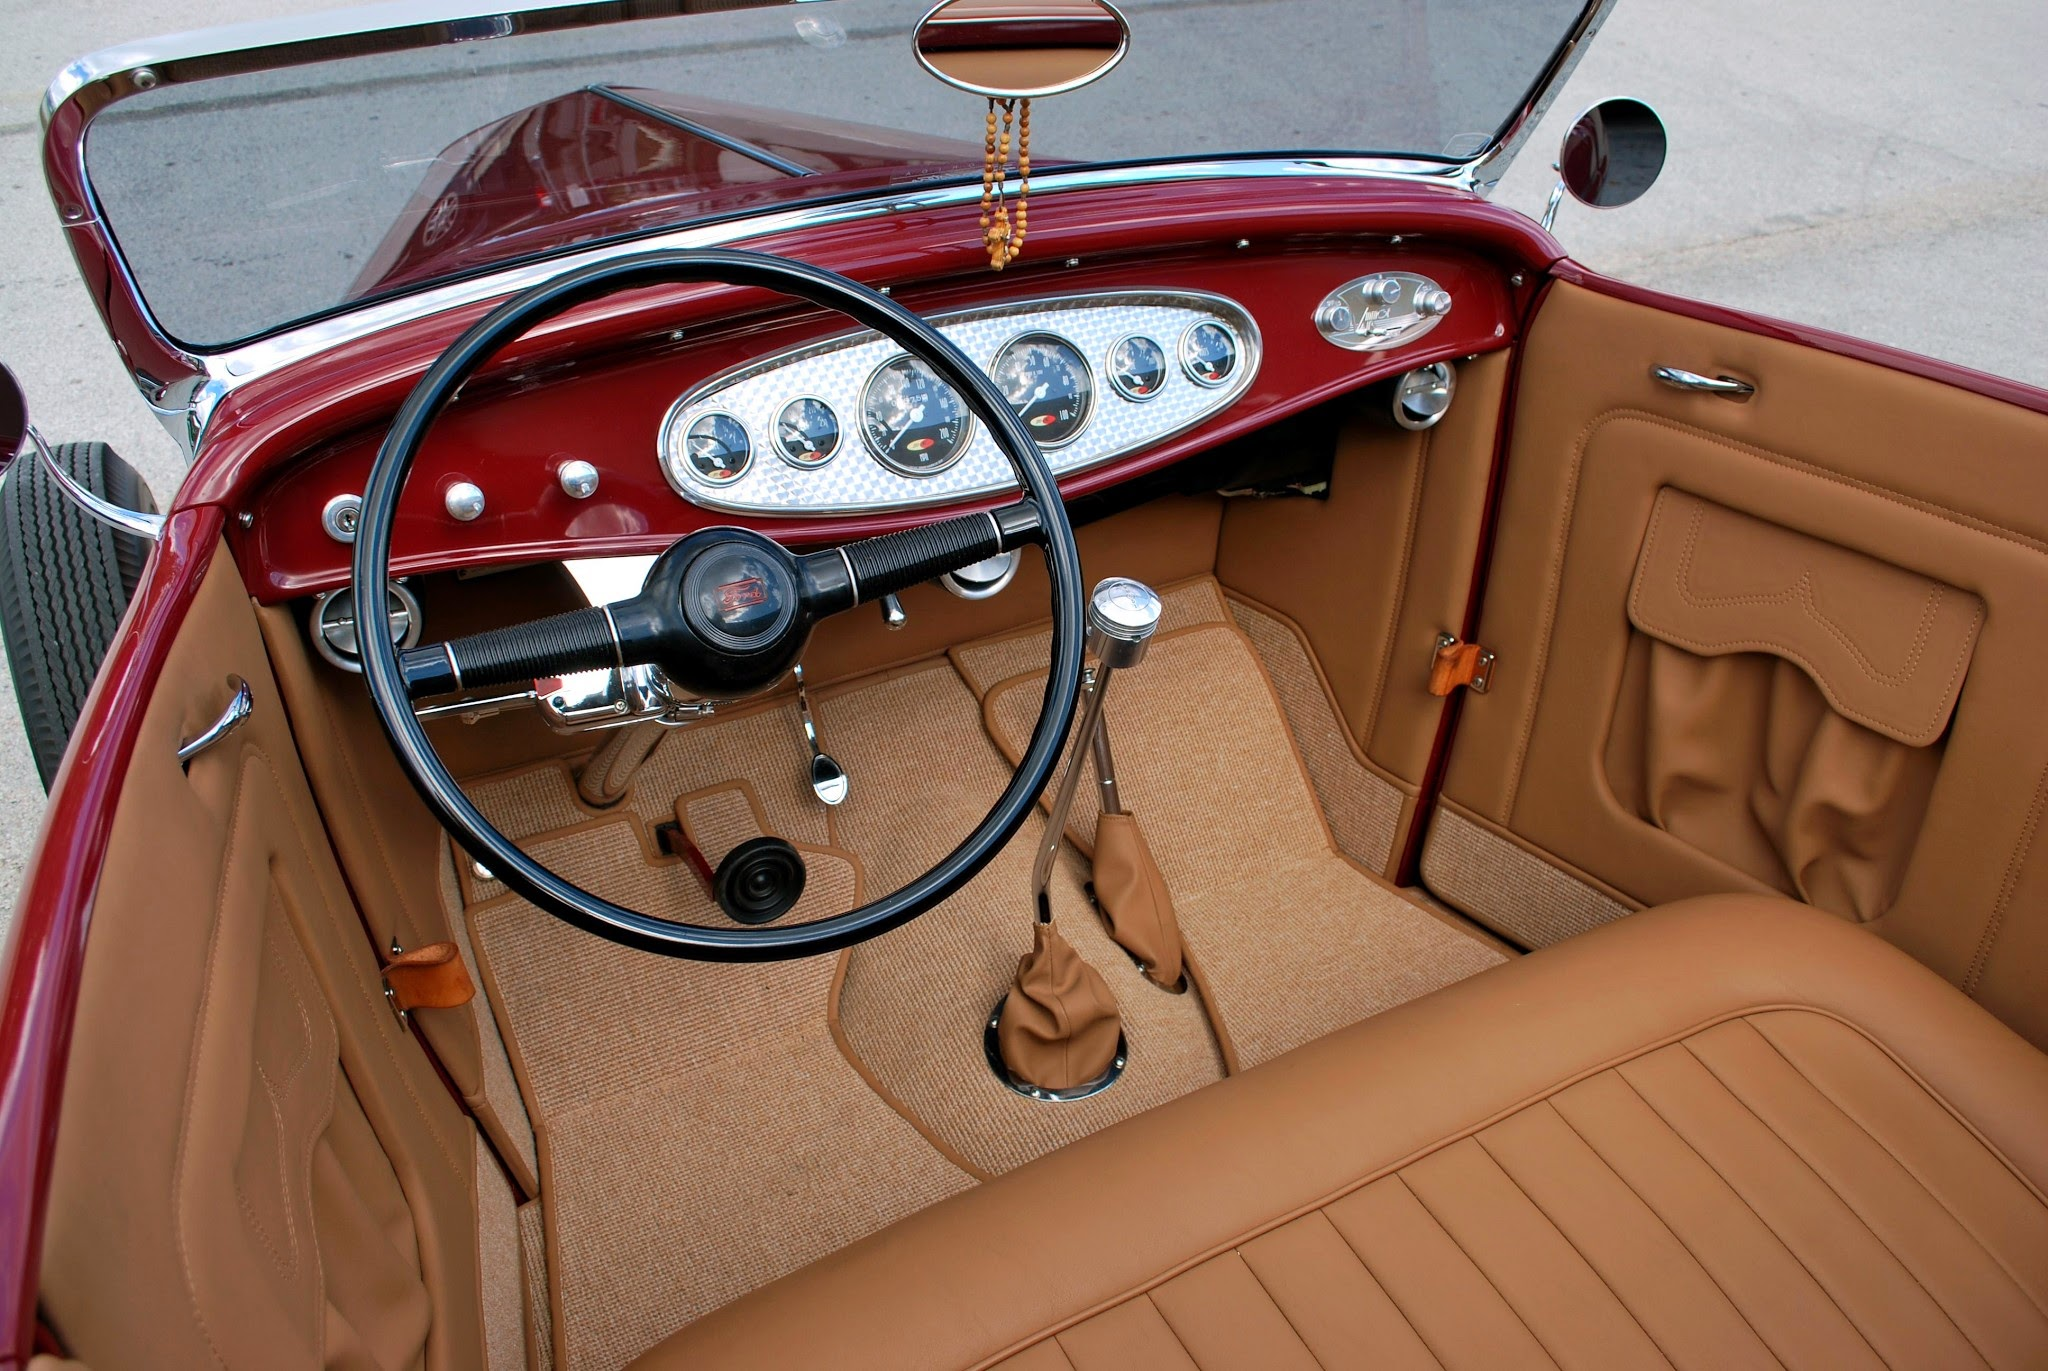 1932 Ford Roadster Interior Decoratingspecial Com